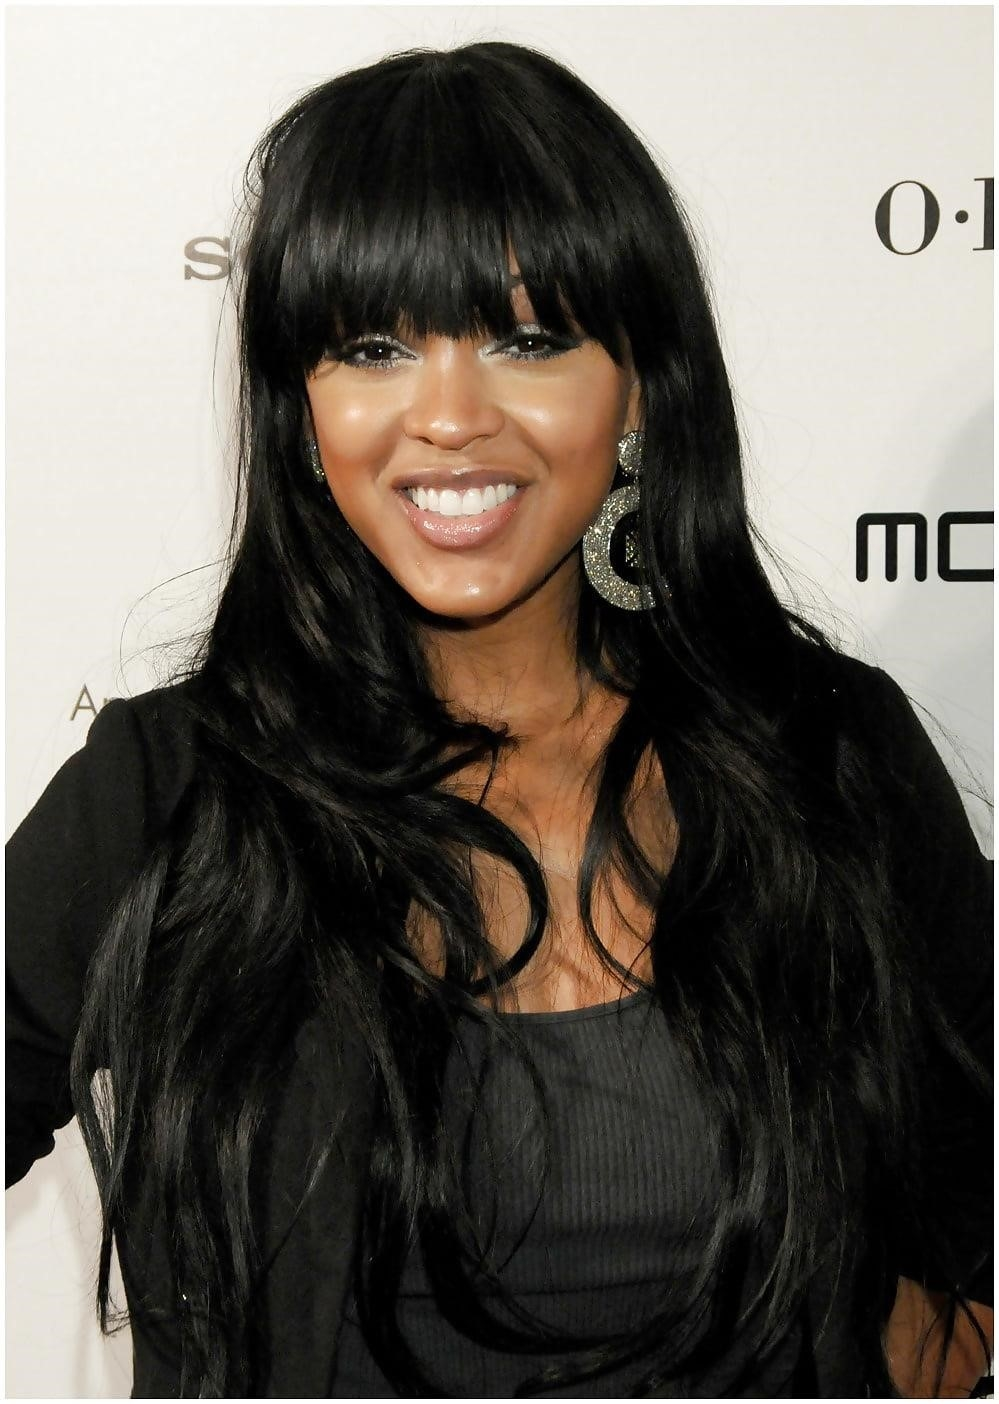 Meagan good nude pictures-4103